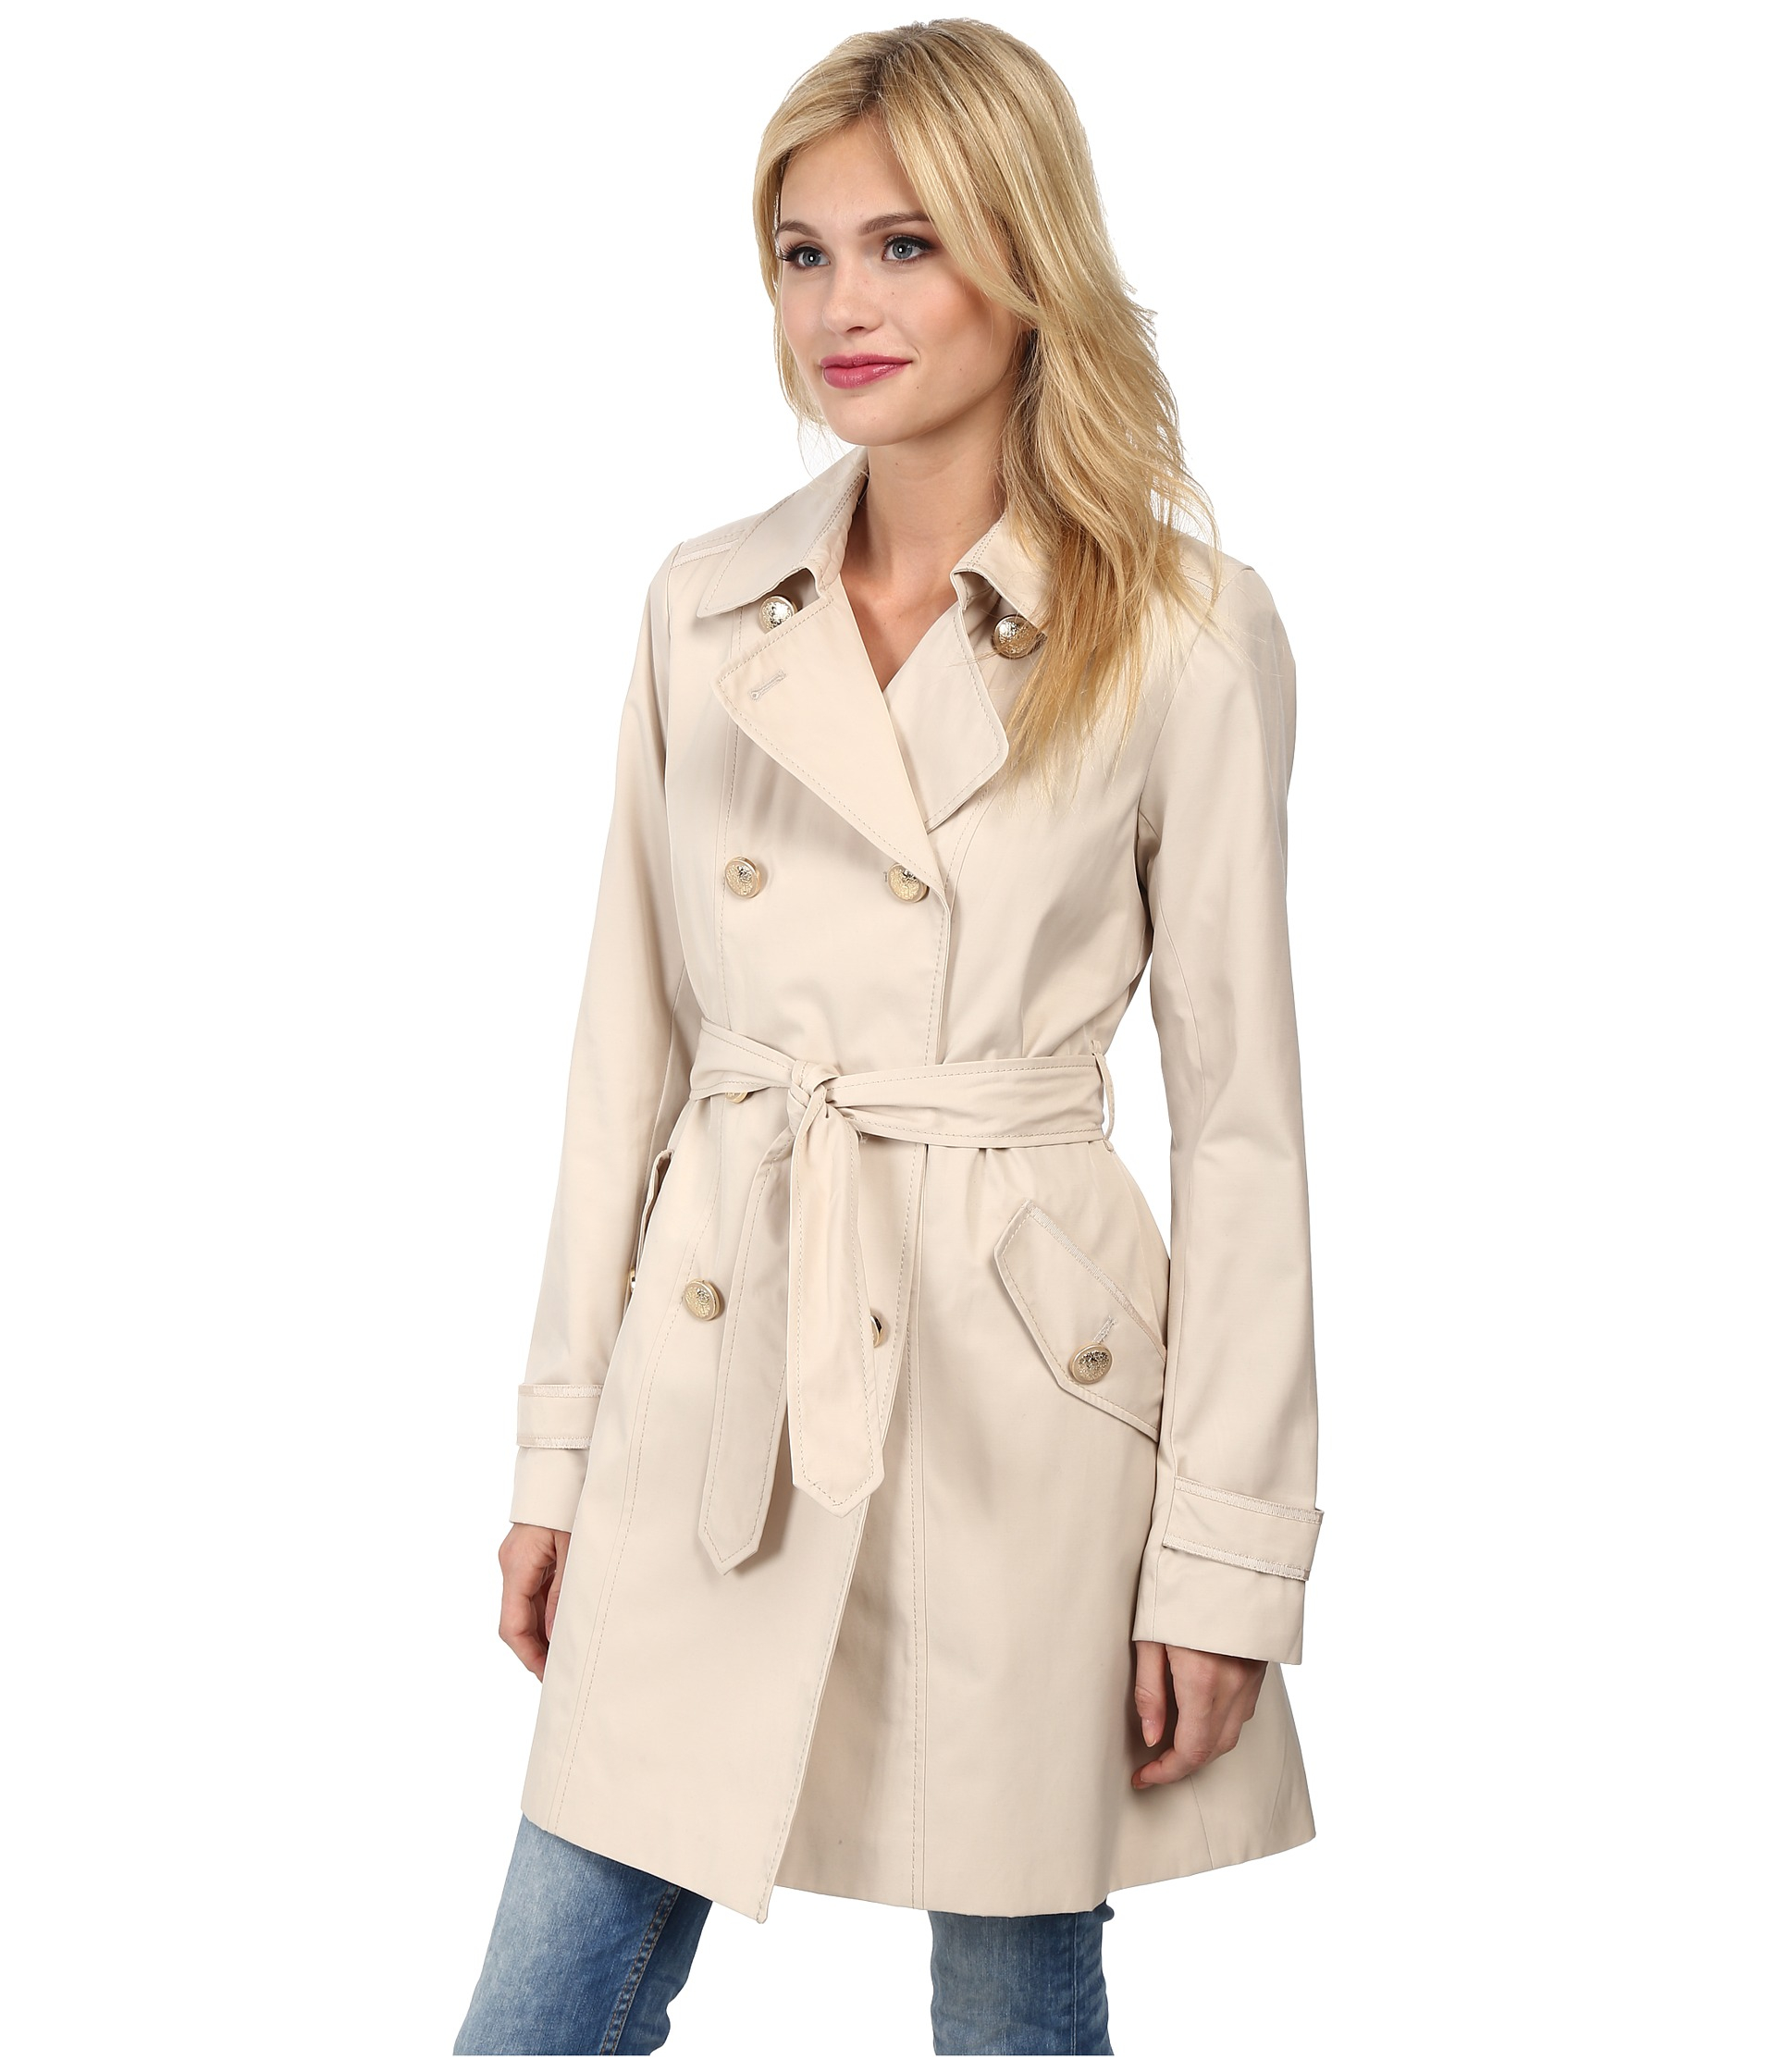 4bbafaeaecf74 Lyst - Vince Camuto Double Breasted Trench Coat in Natural